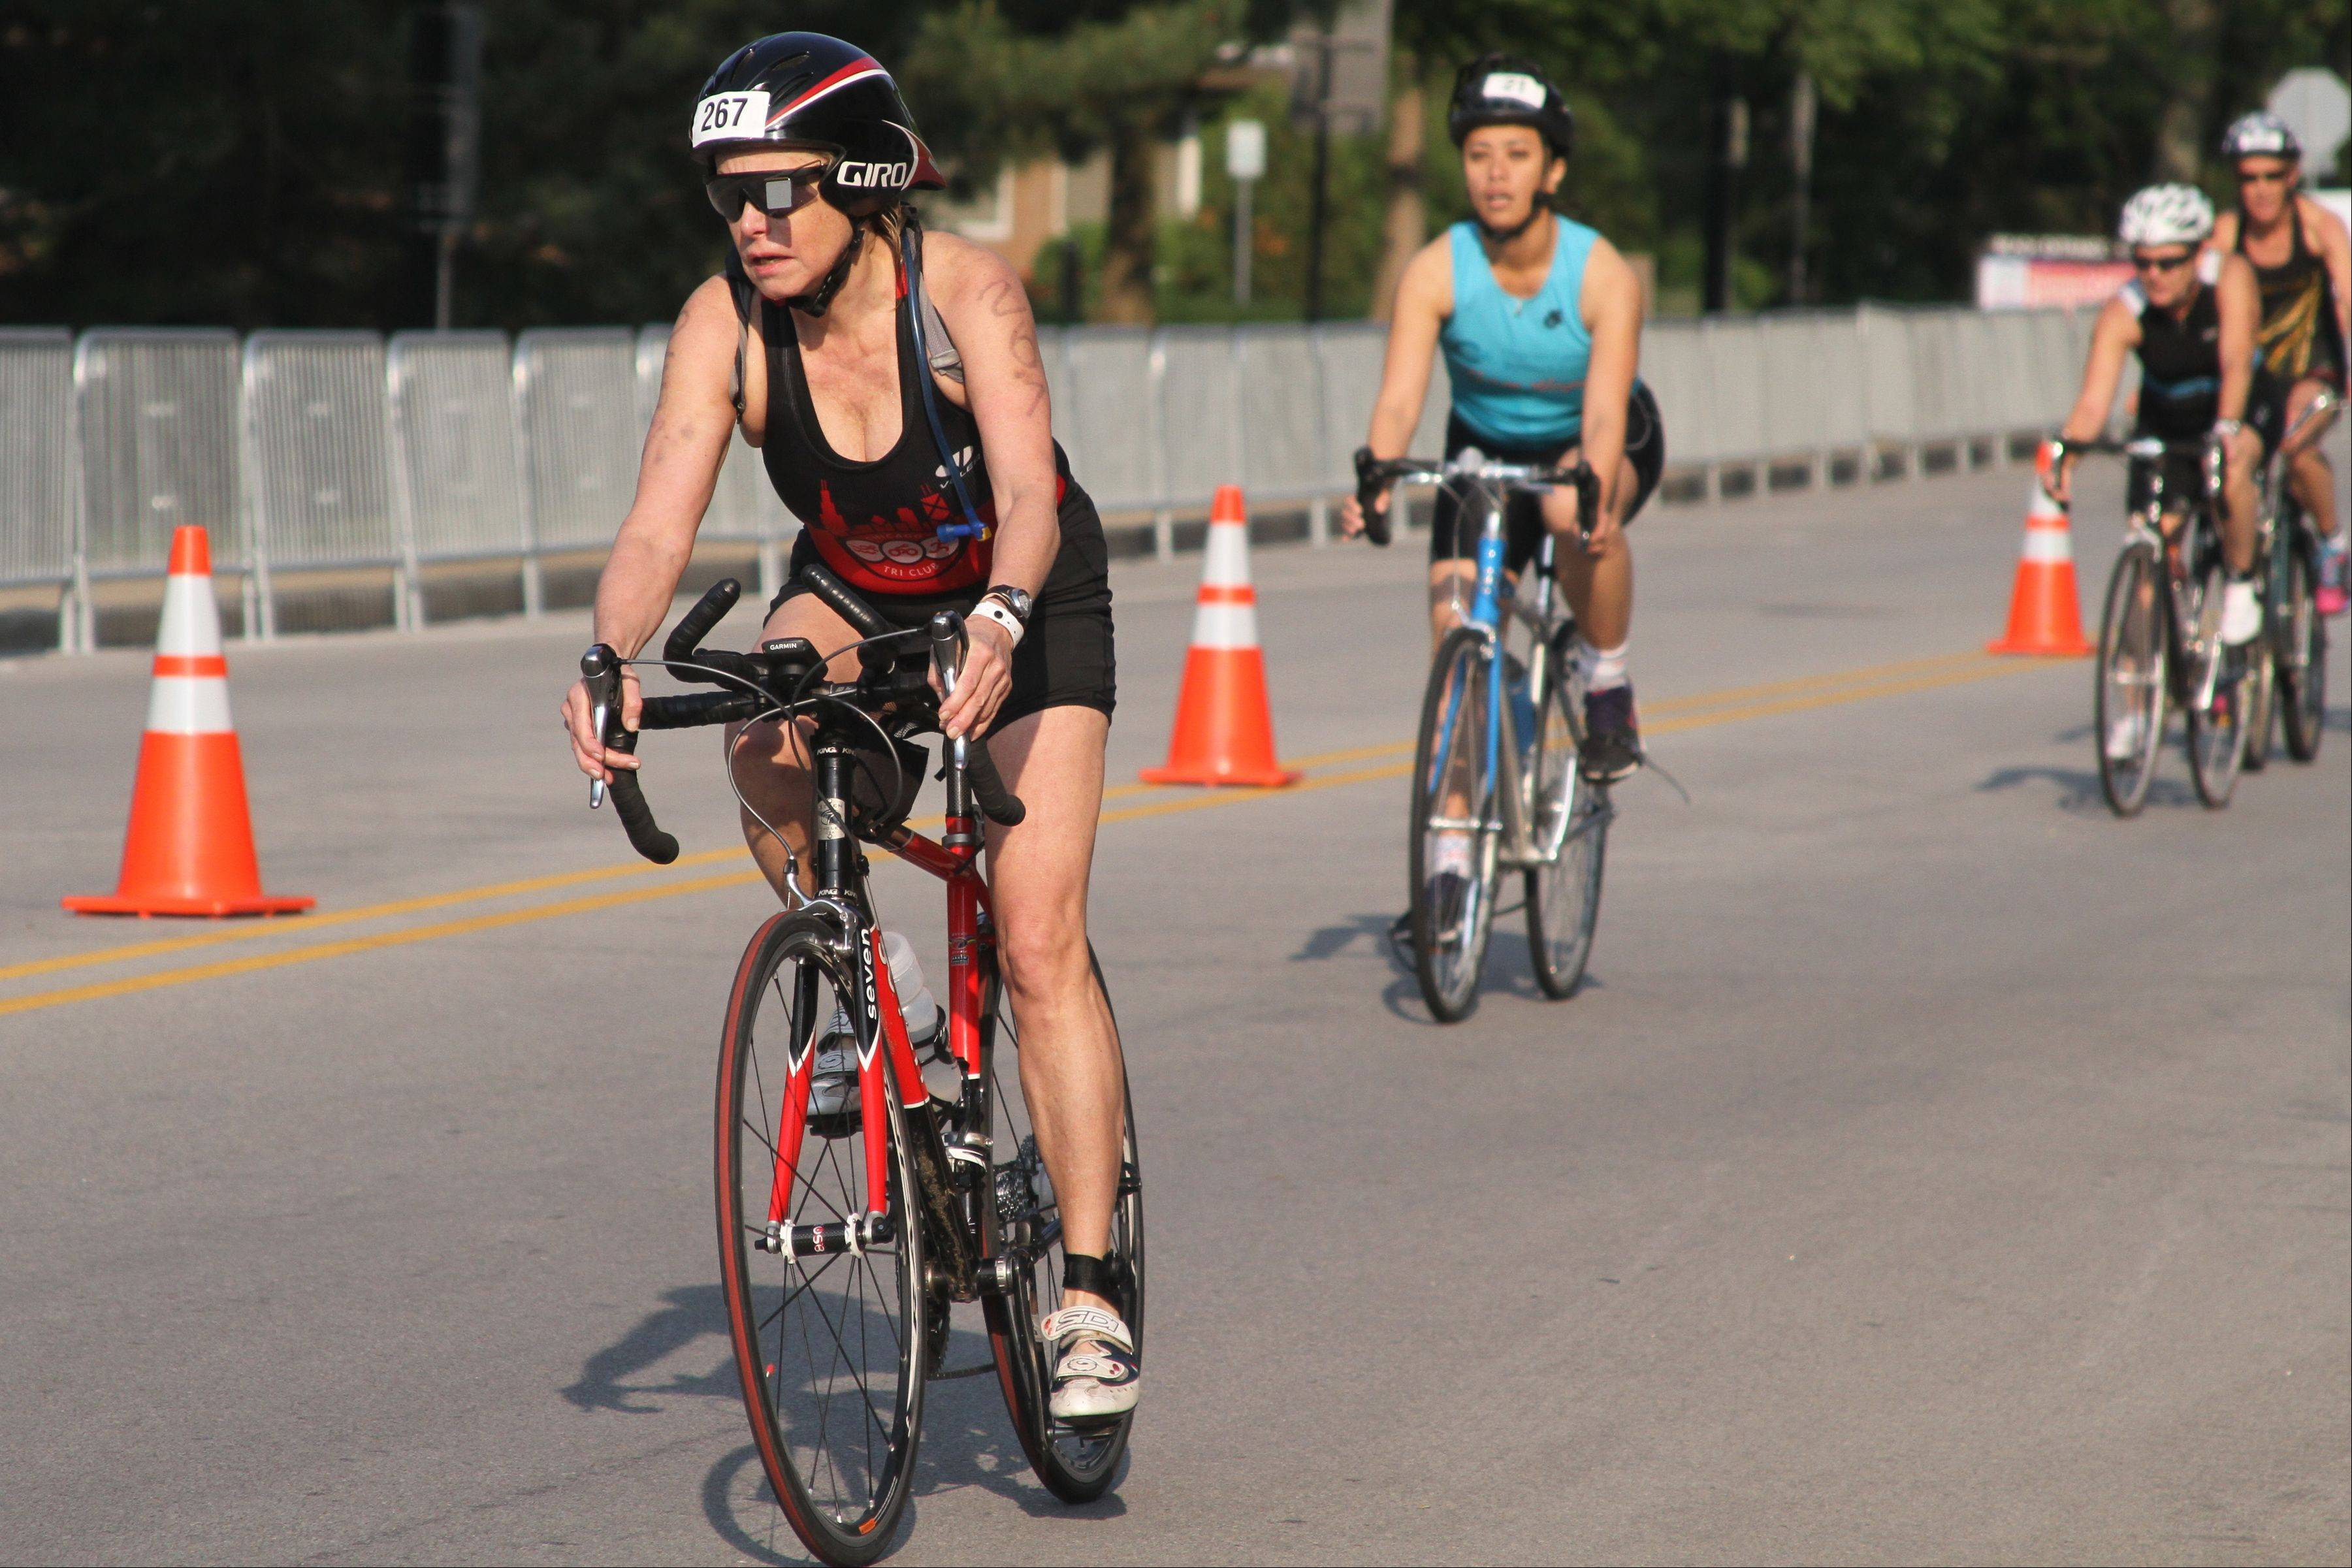 Athletes bike down Jackson Street in downtown Naperville as a part of the second leg of the Athleta Esprit de She Triathlon through downtown Naperville on Sunday. The triathlon started at Centennial Beach with a half-mile swim, followed by a 14.2-mile bike ride and a 3.1-mile run.